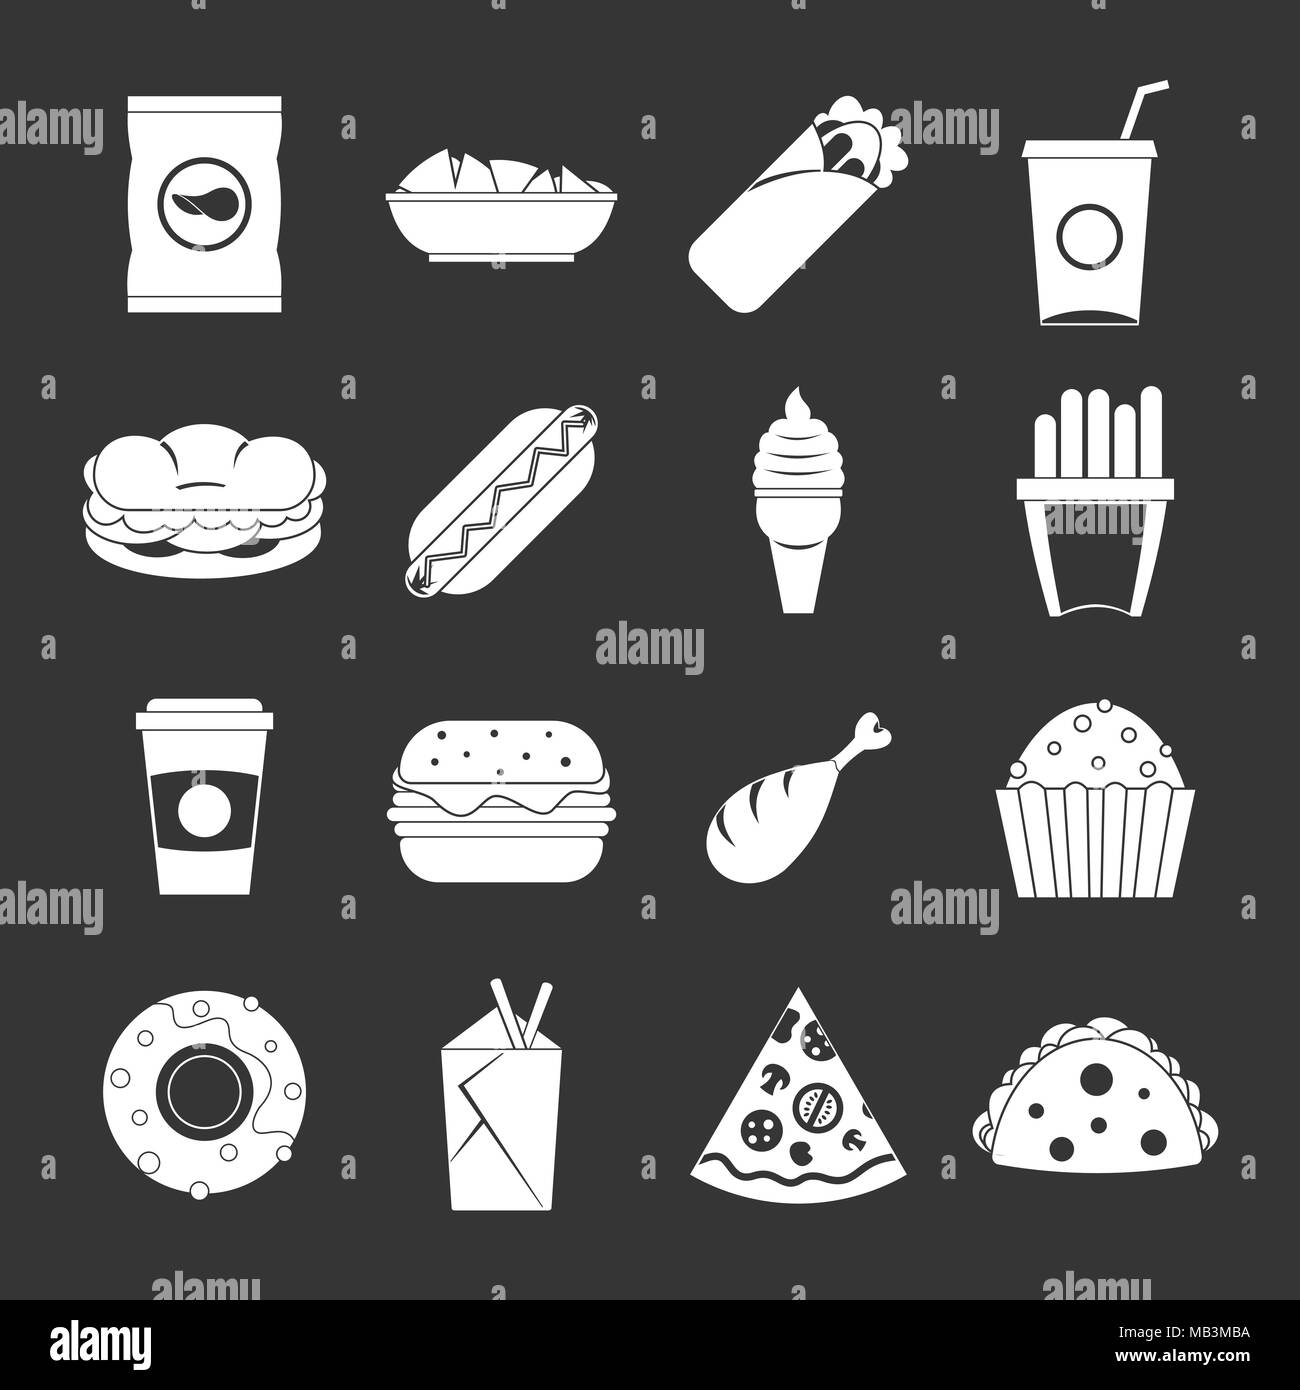 Fast food icons set grey vector - Stock Image